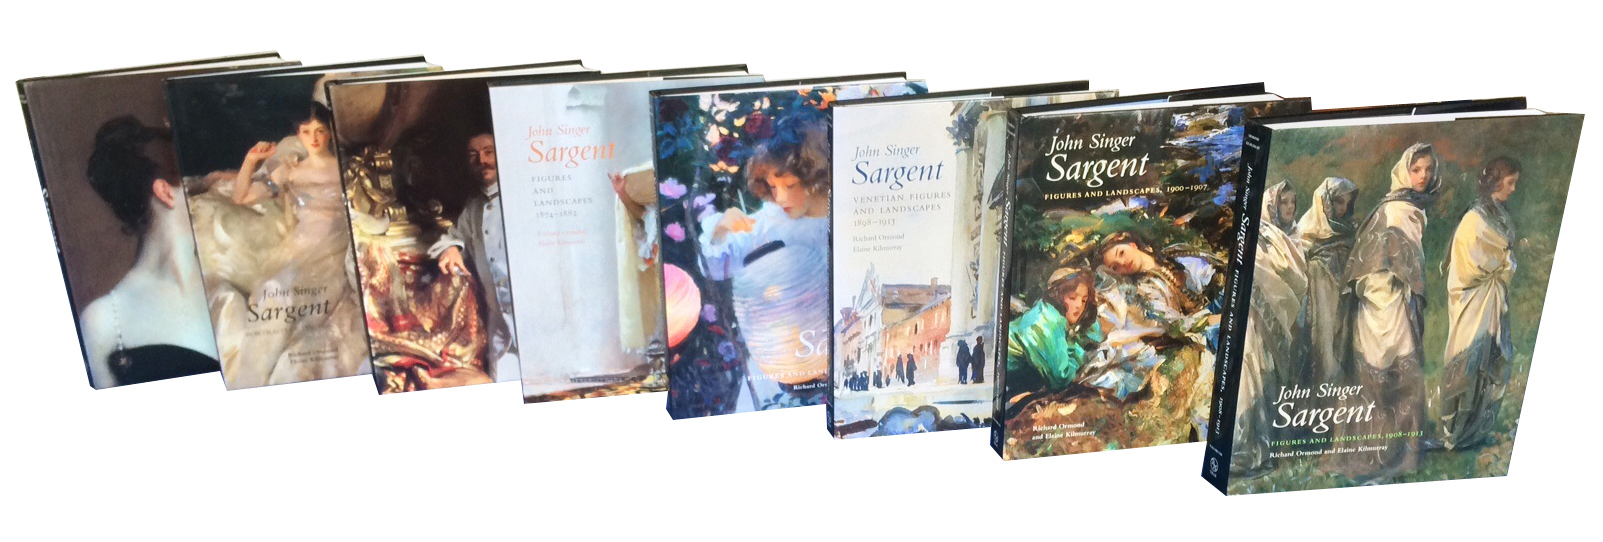 Sargent catalogue raisonne